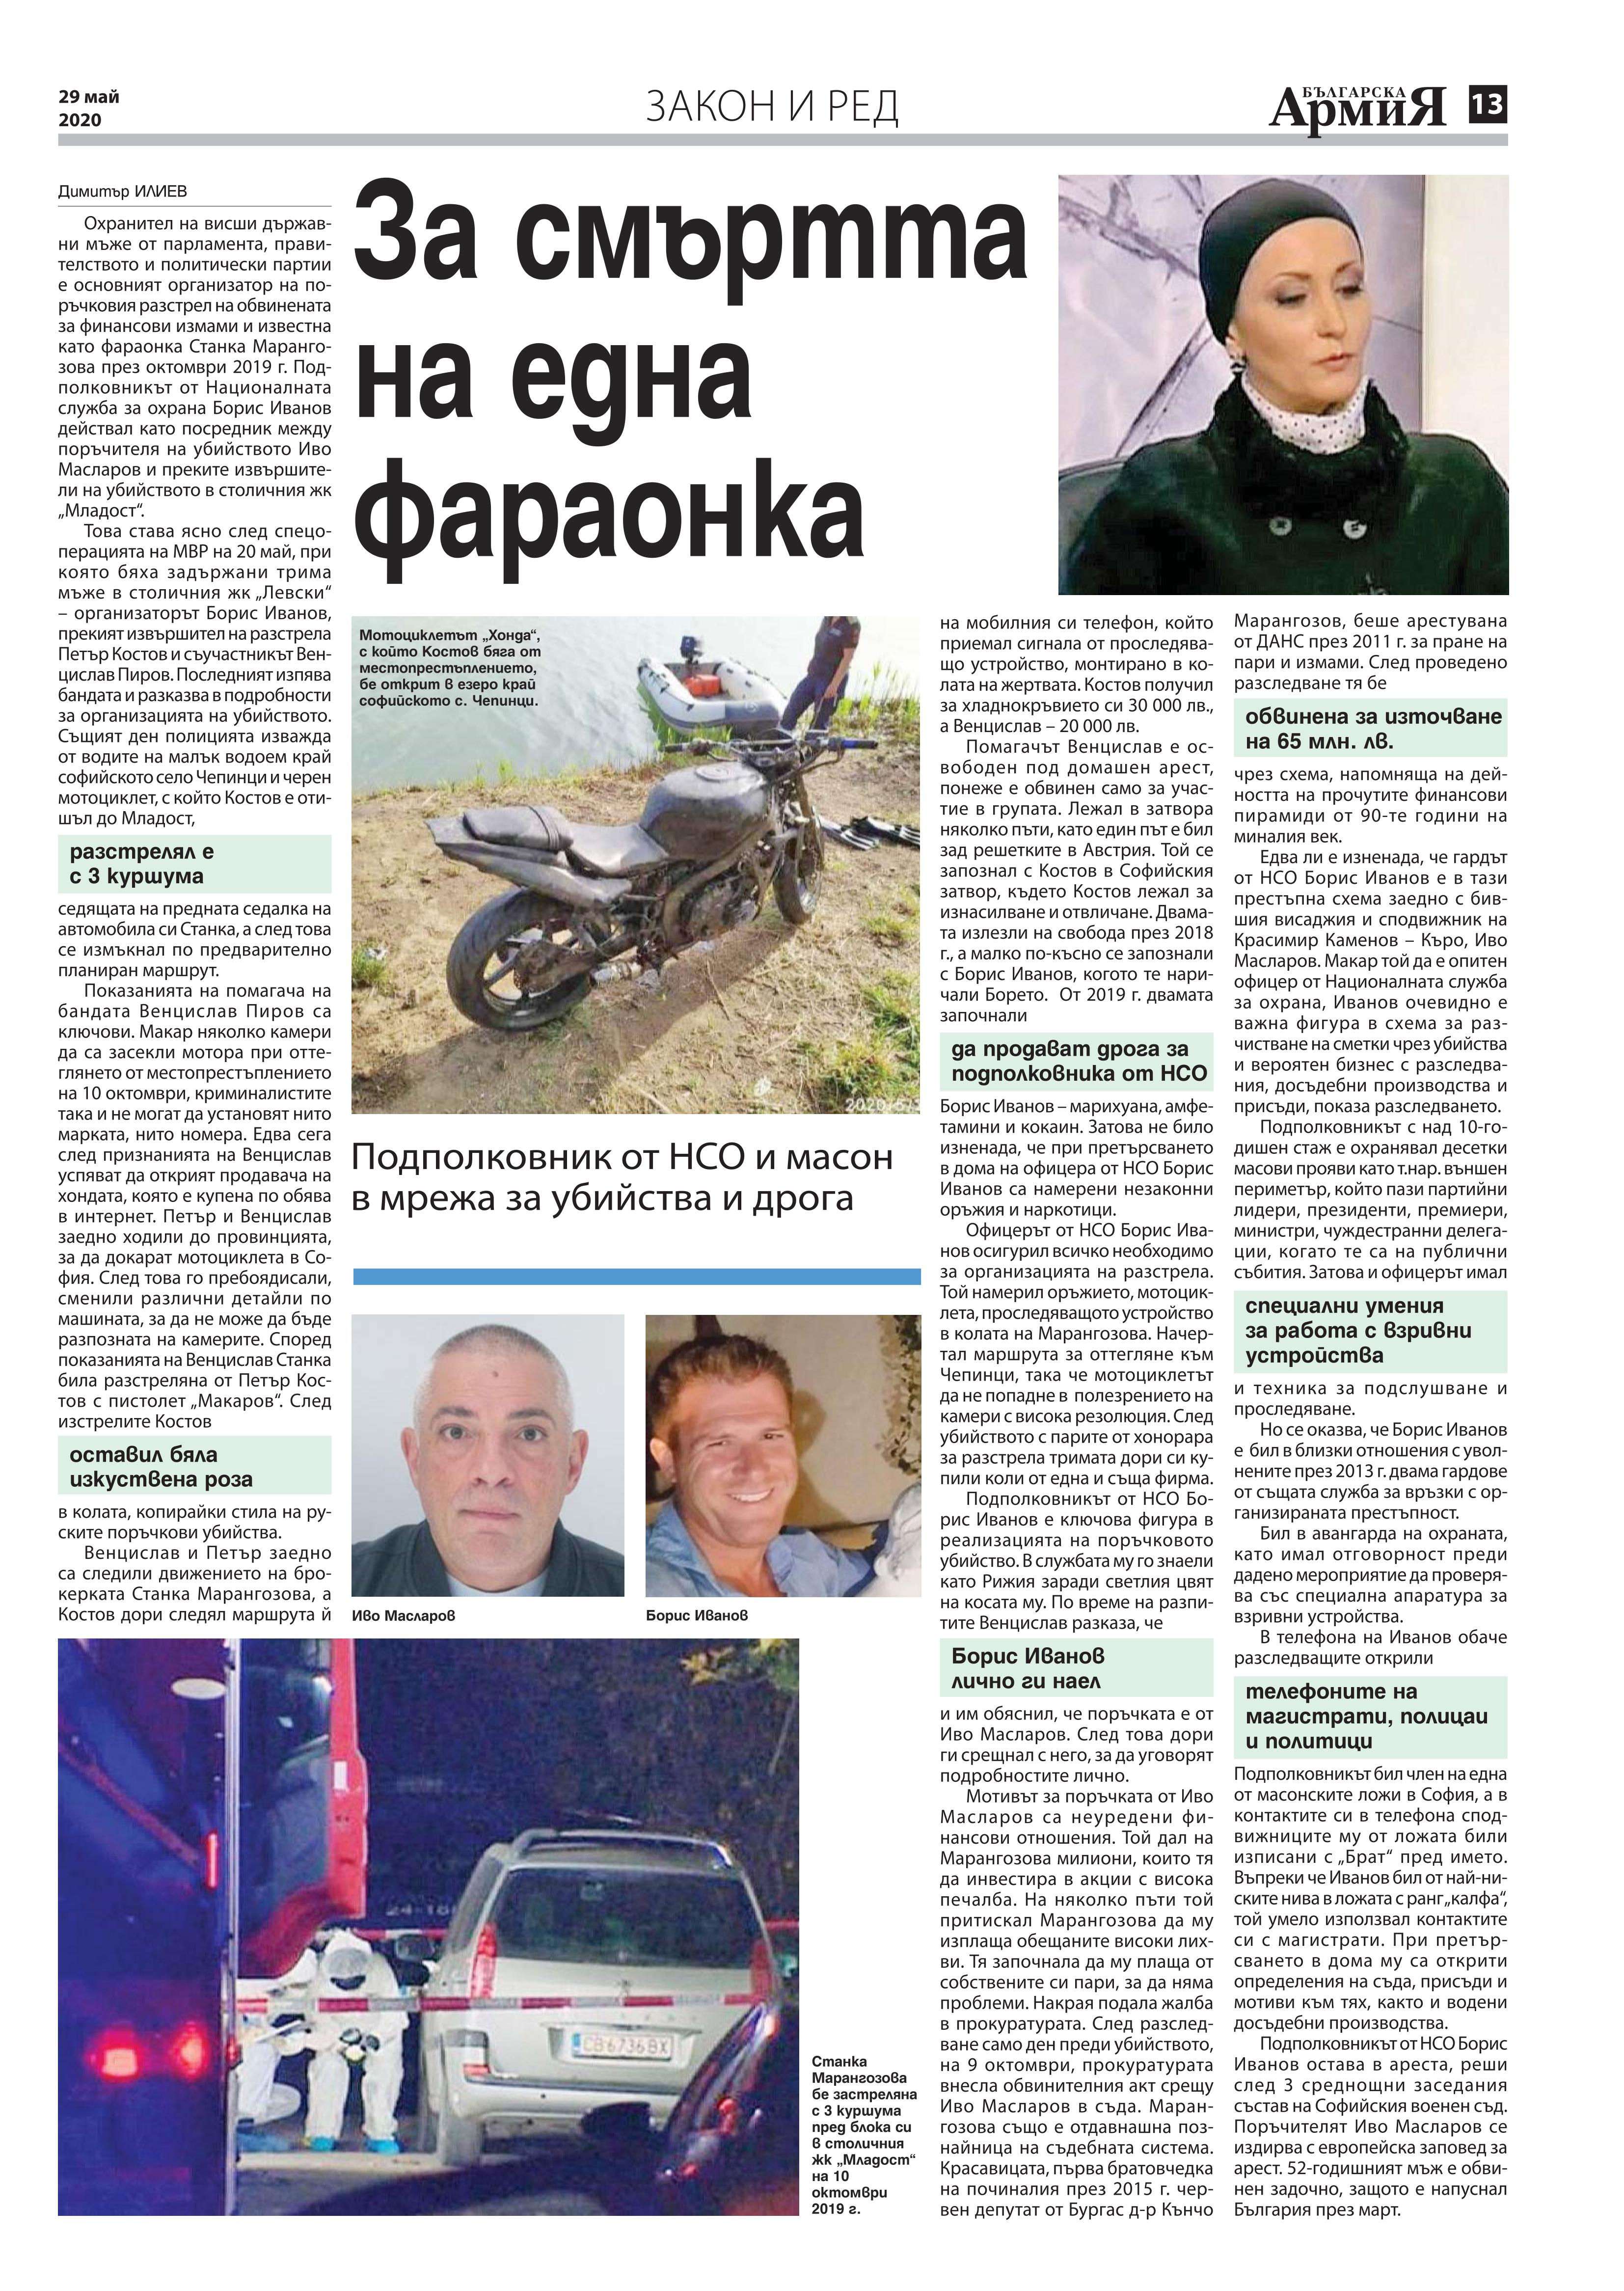 https://www.armymedia.bg/wp-content/uploads/2015/06/13.page1_-141.jpg